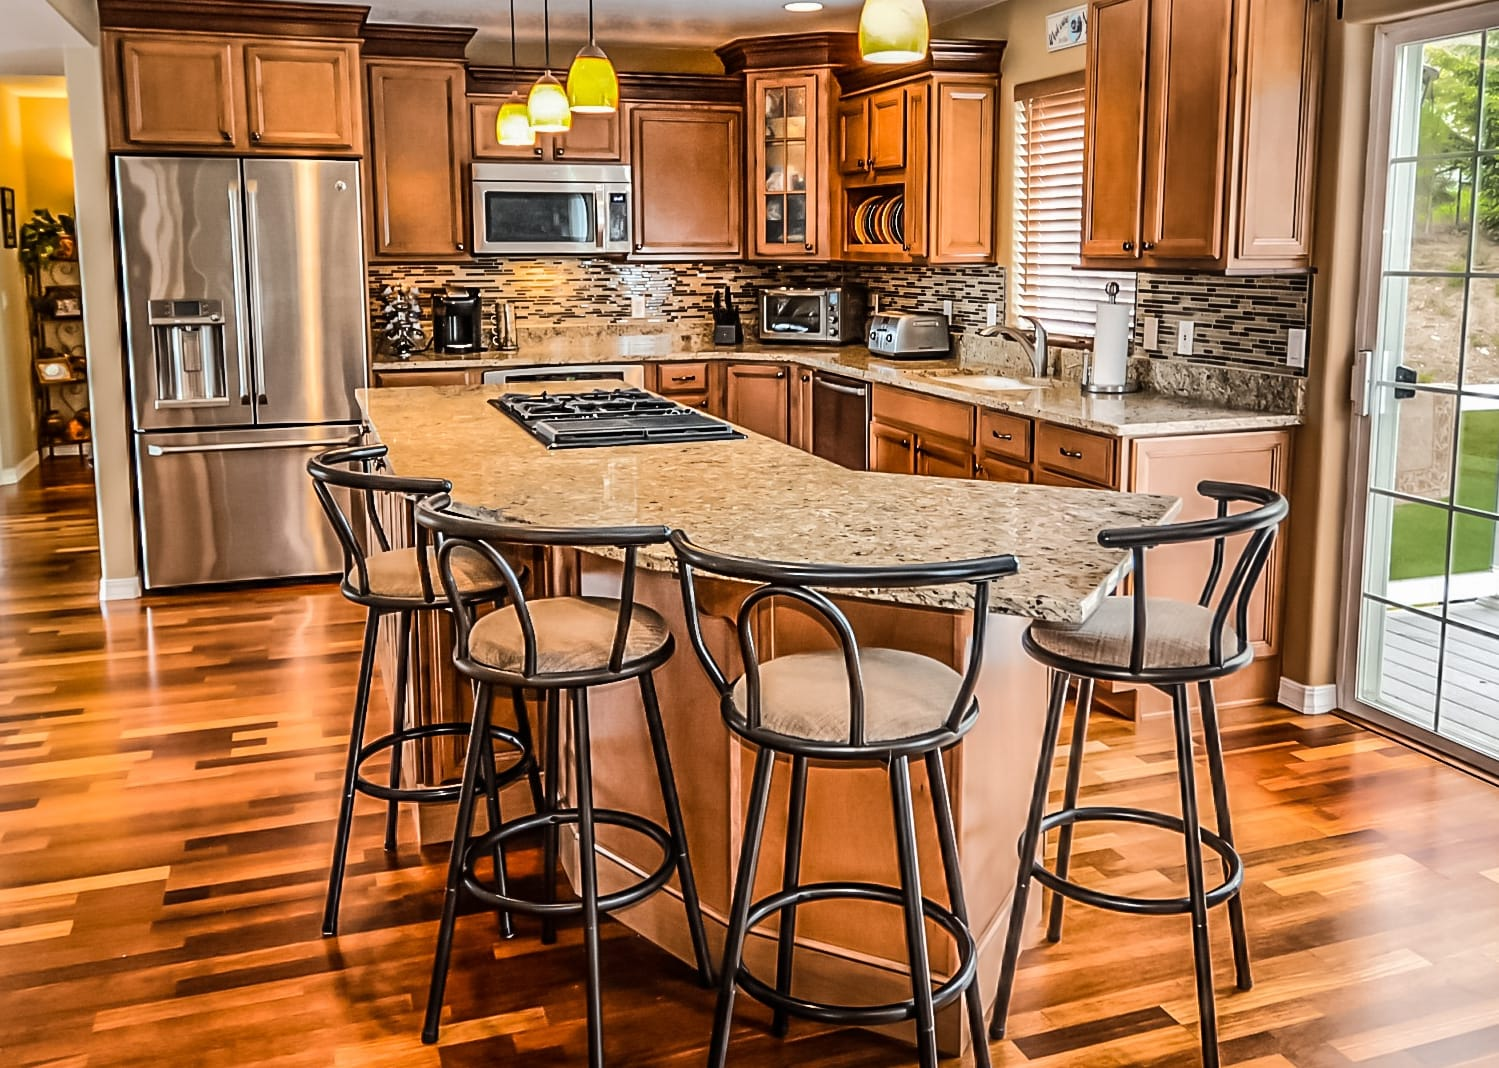 Homeowners Love the New Look of Their Kitchens After Remodeling